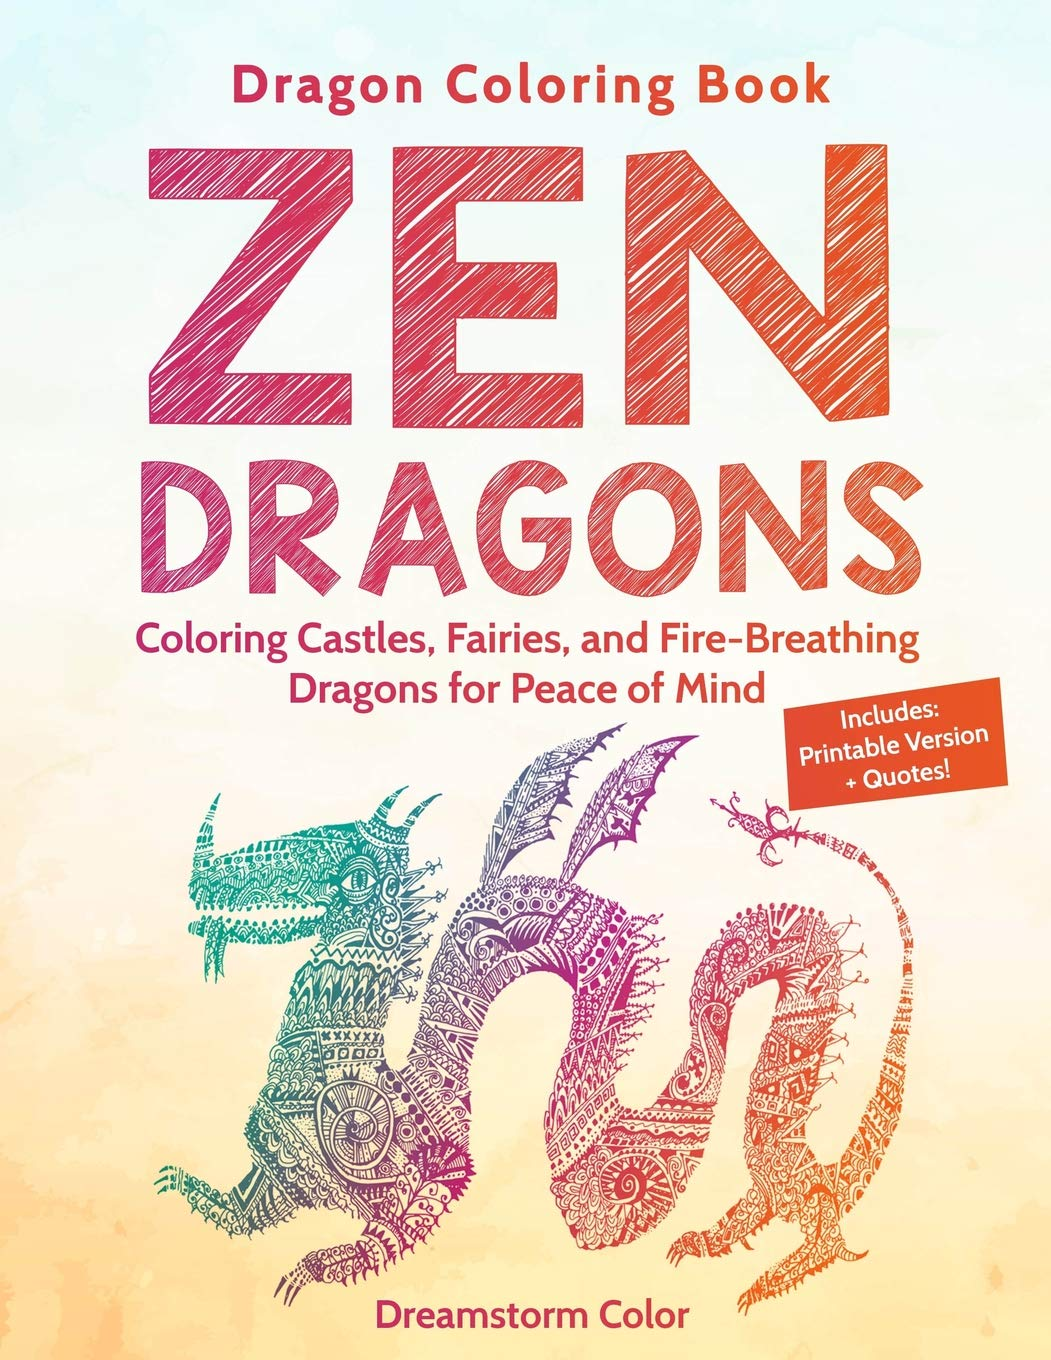 Amazon Com Dragon Coloring Book Zen Dragons Coloring Castles Fairies And Fire Breathing Dragons For Peace Of Mind With Printable Pdf And Quotes 9781719974172 Color Dreamstorm Books